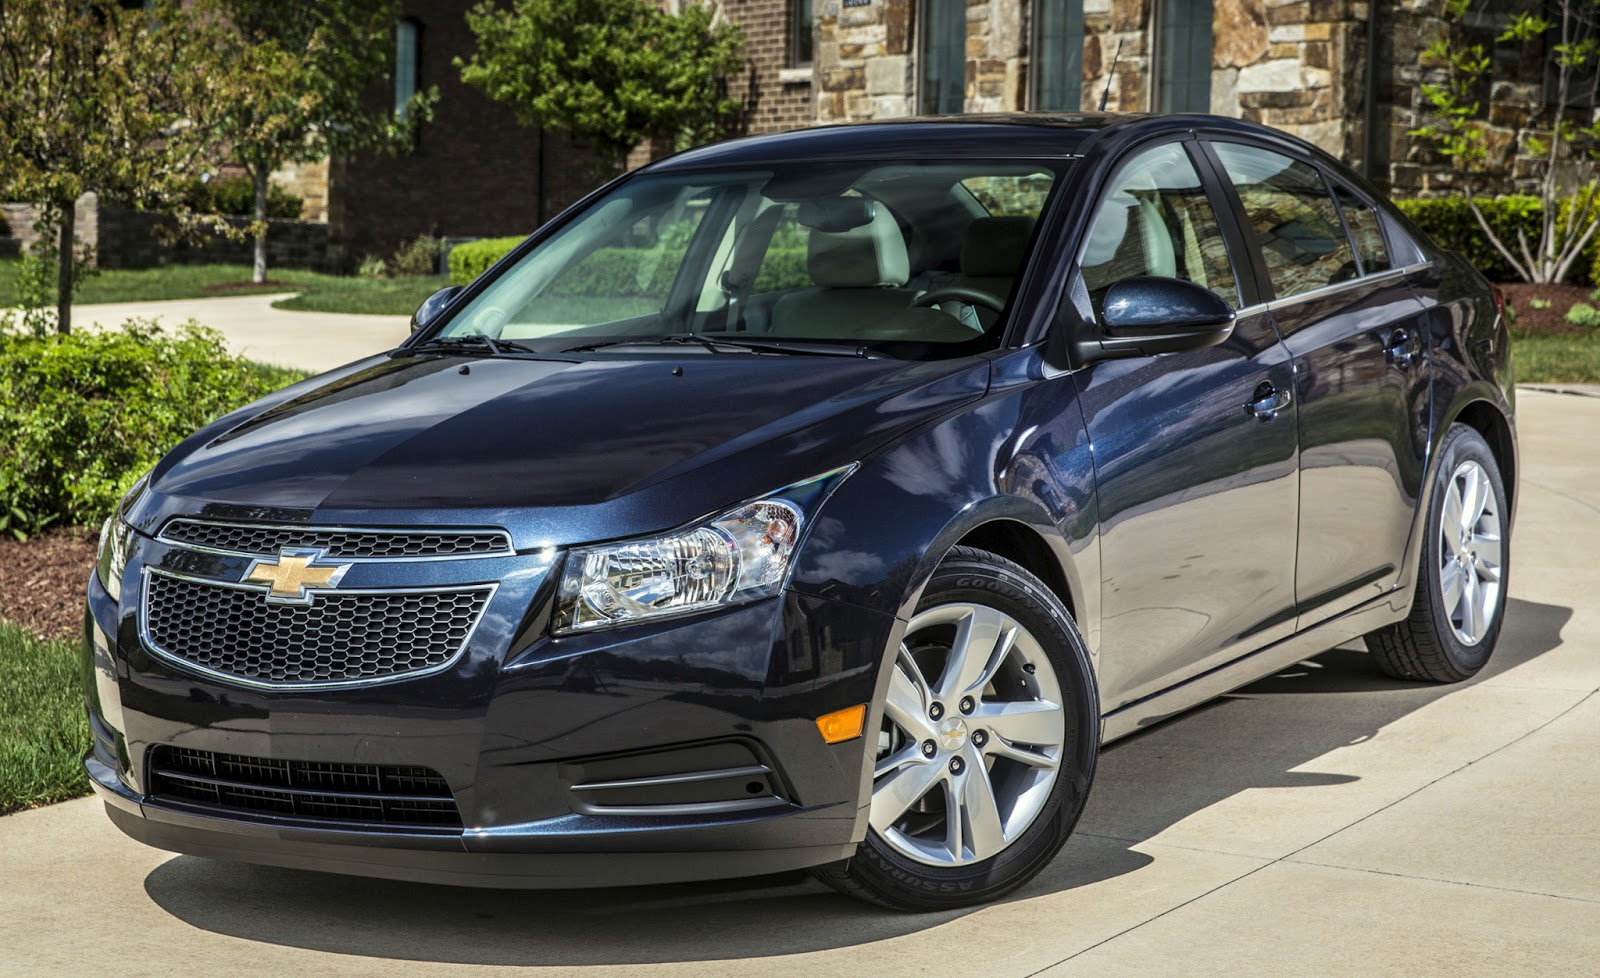 Chevrolet announced that it would be adding a diesel engine model to its car line up and here it is the 2014 cruze clean diesel